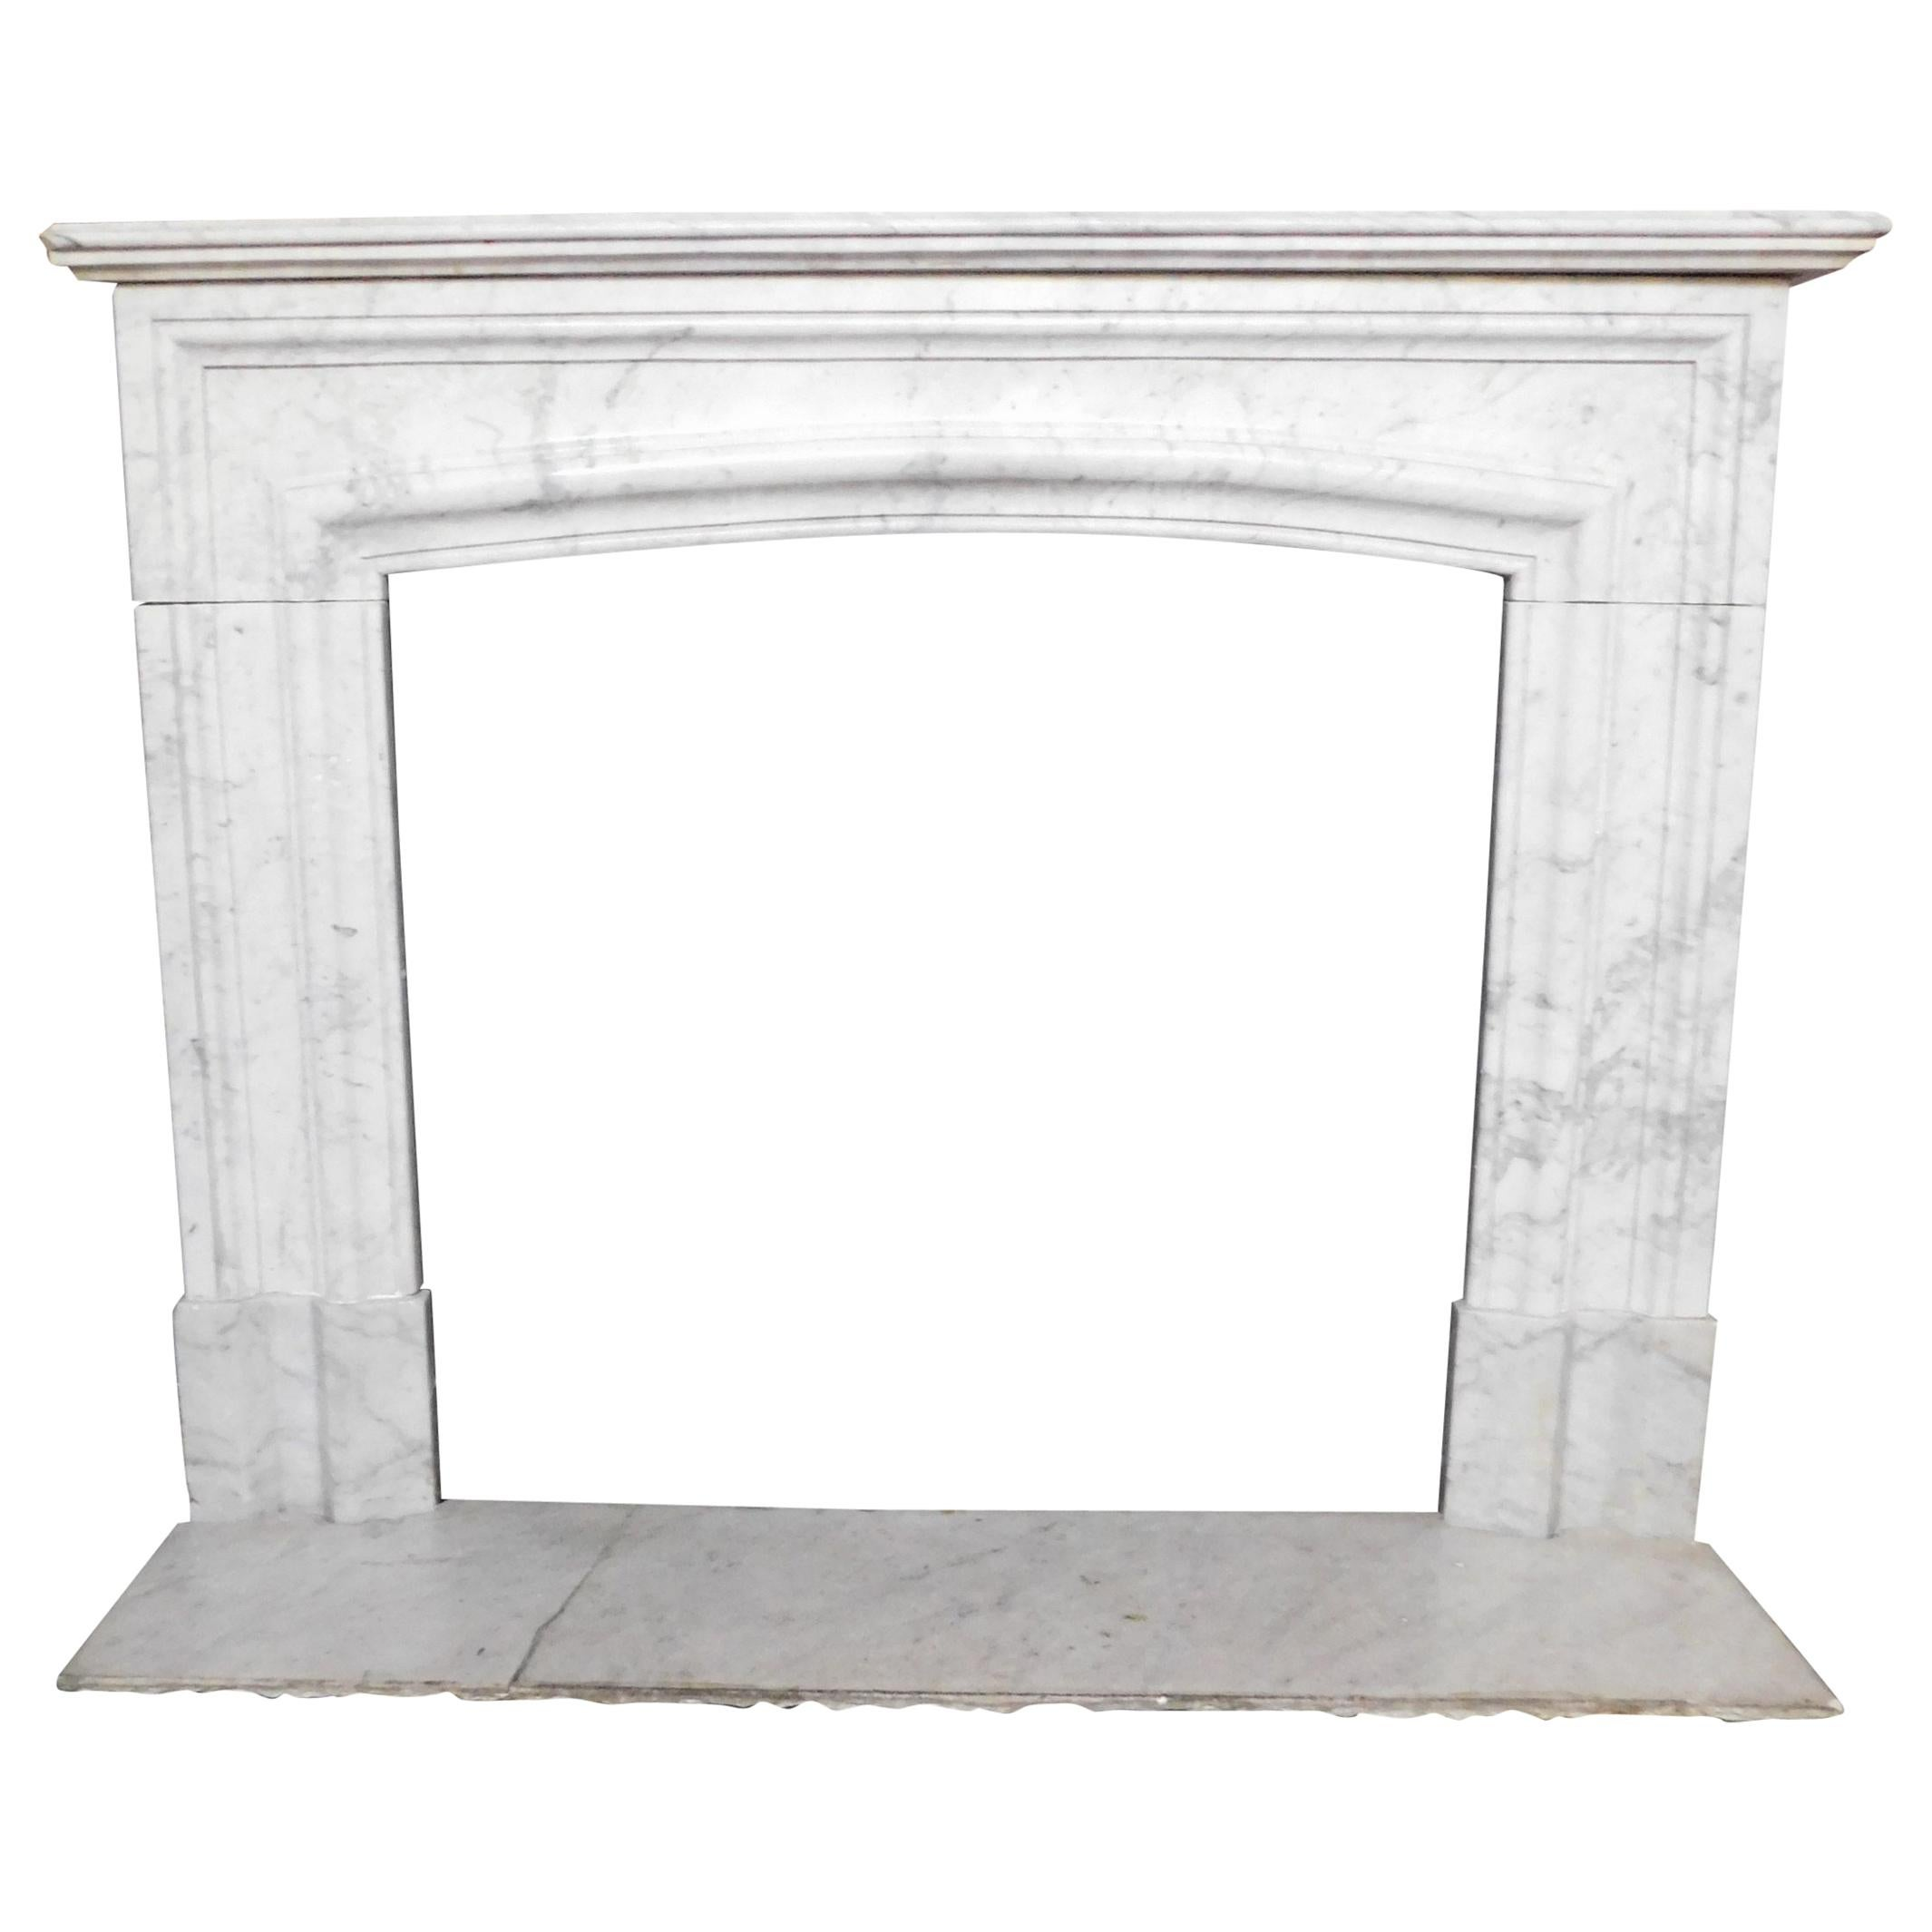 Antique White Carrara Marble Fireplace Mantle Complete, 19th Century, Italy